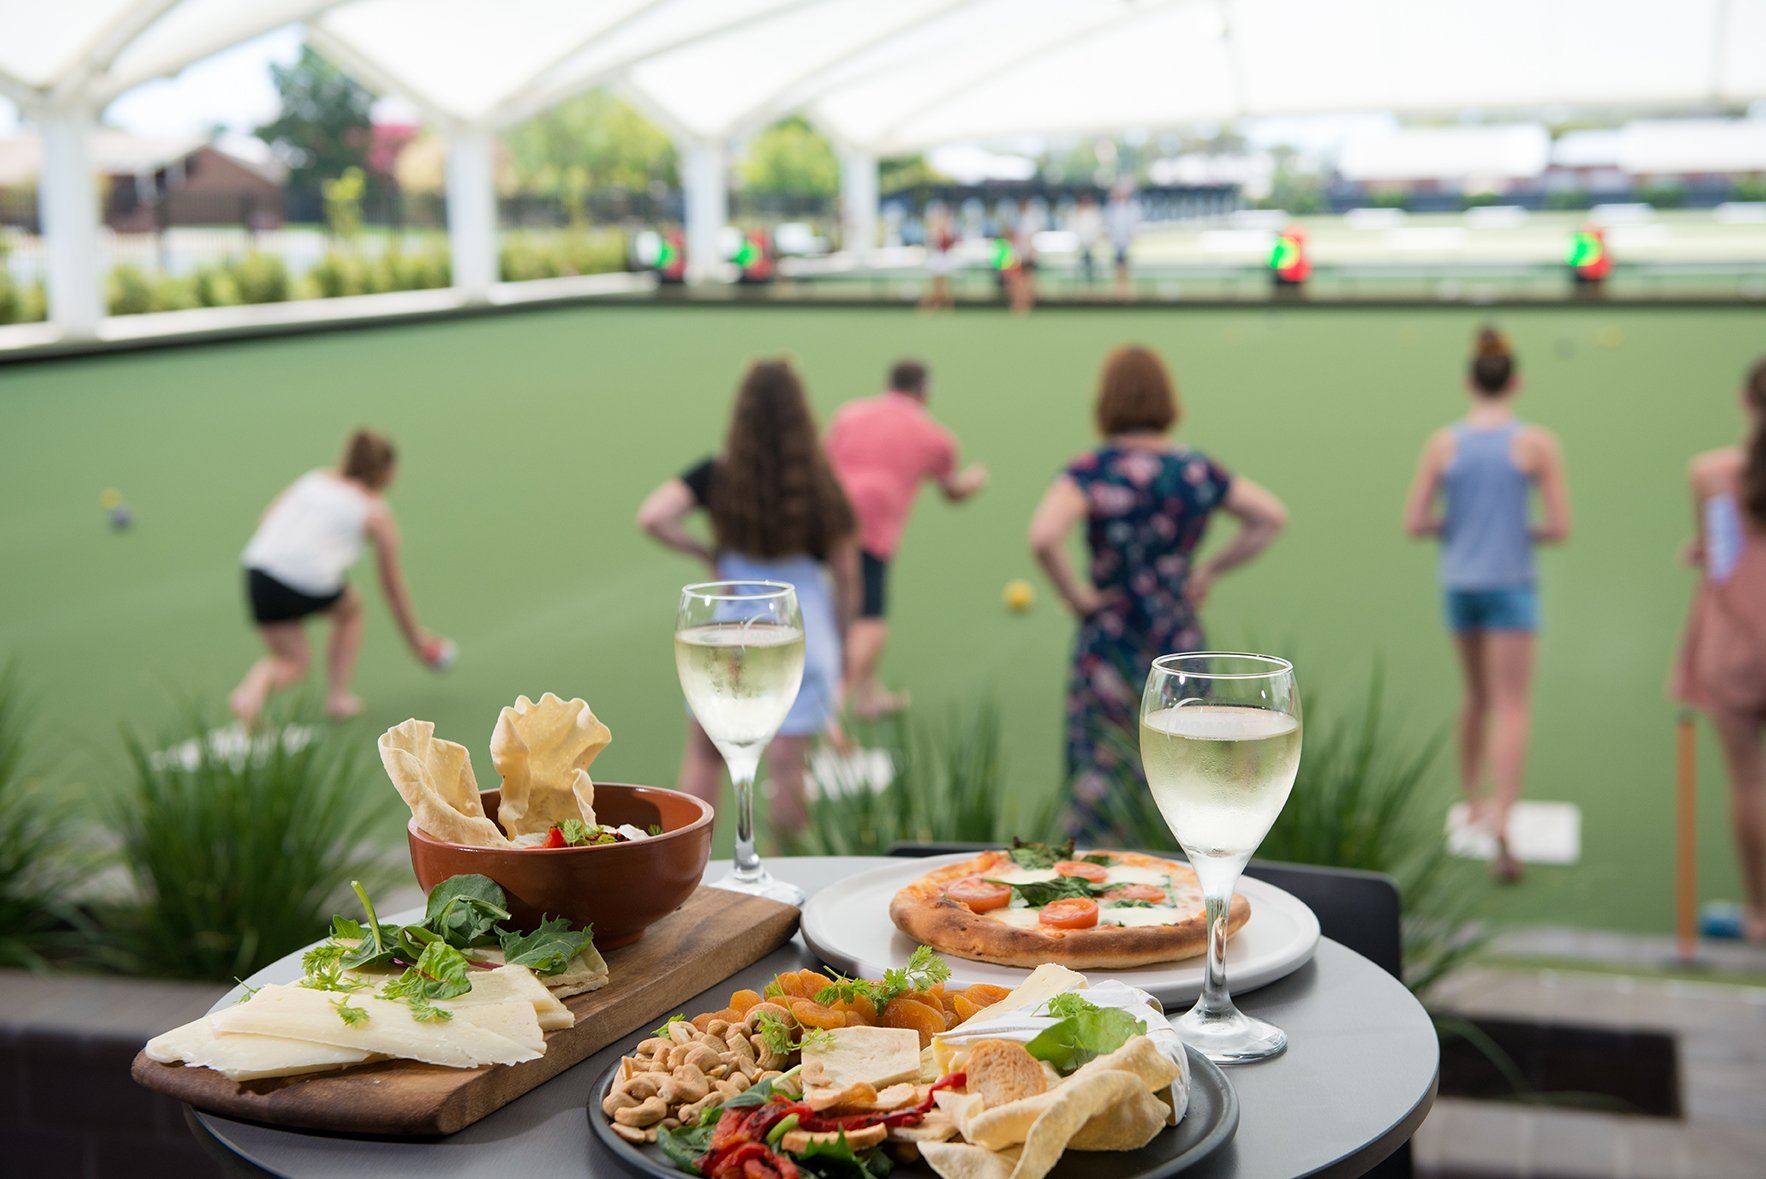 food options at The Greens at moama bowling club